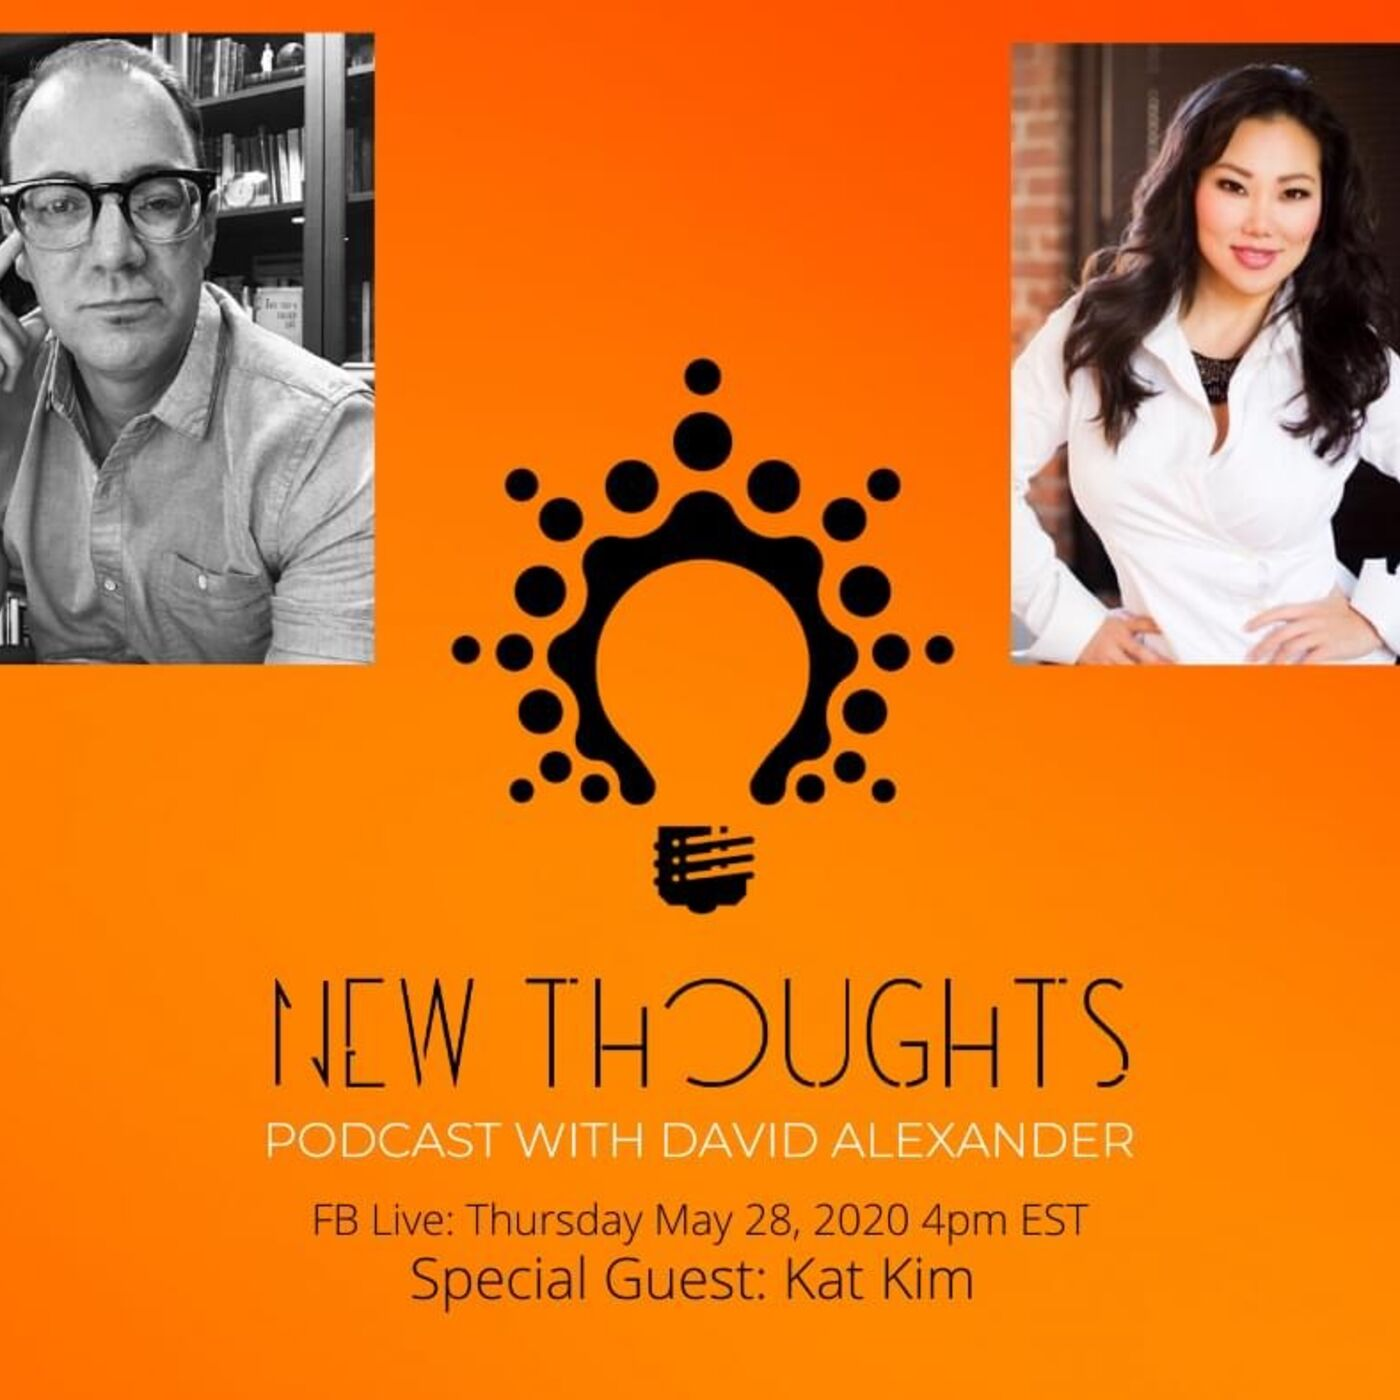 Consumer Spirituality with guest Kat Kim - Part 2